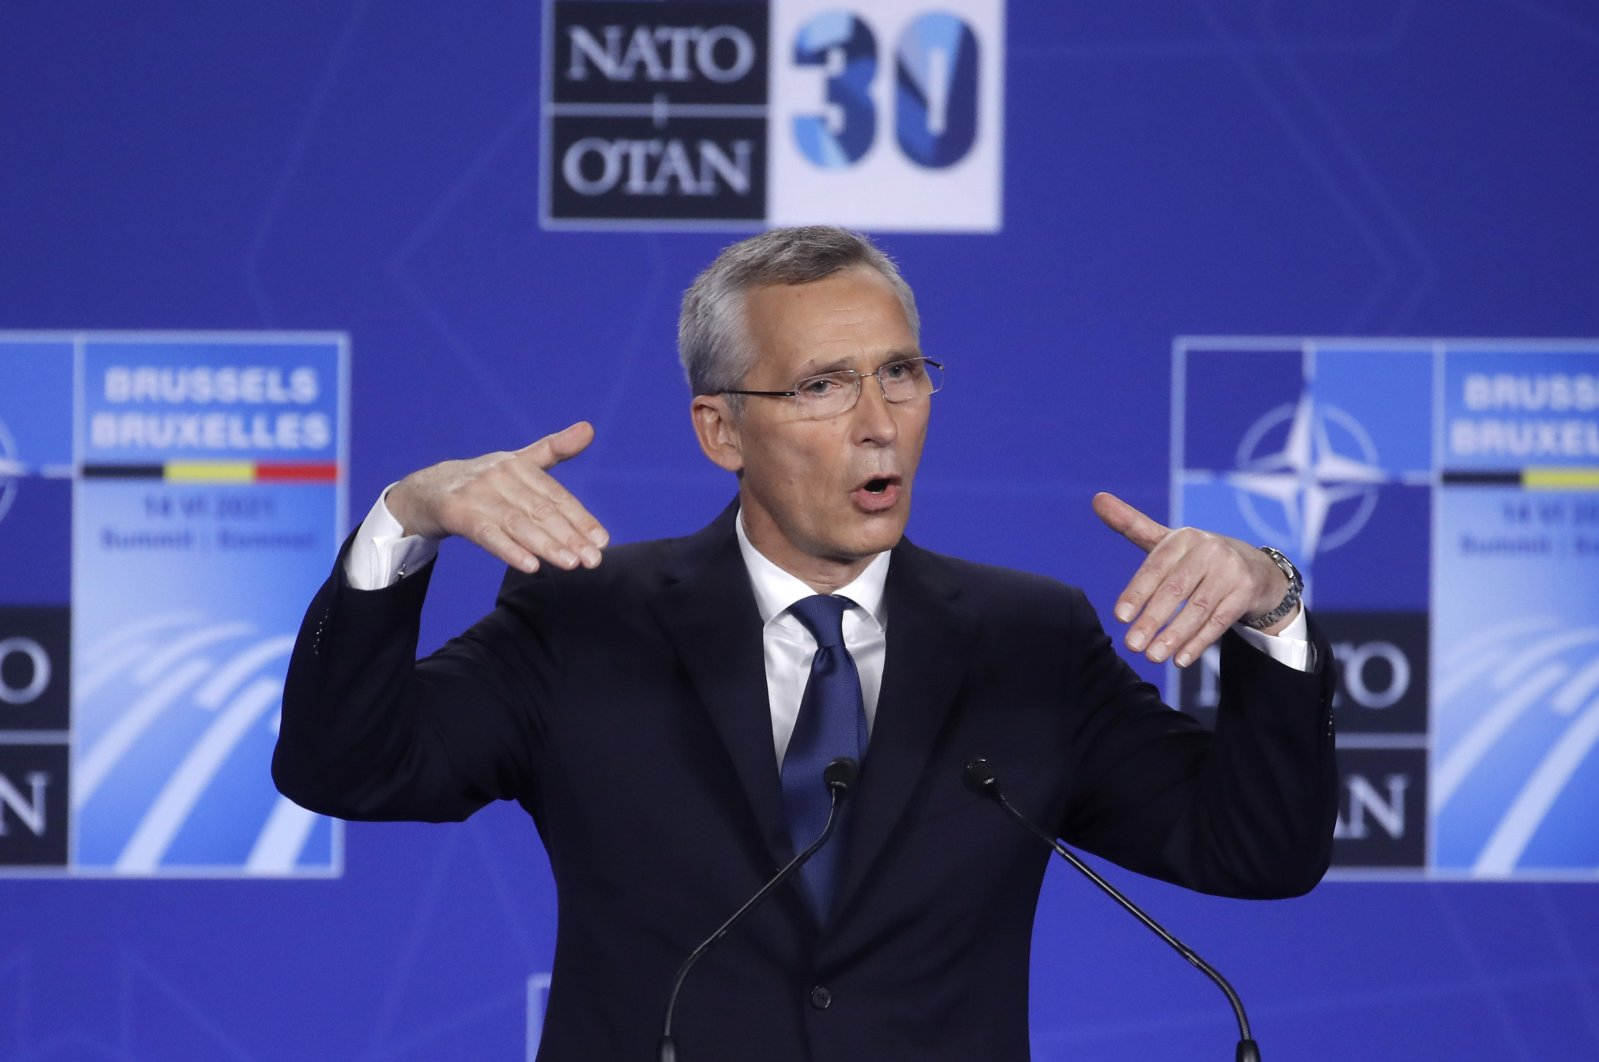 NATO Secretary-General Jens Stoltenberg speaks during a media conference at the NATO summit in Brussels, Monday, June 14, 2021. (Olivier Hoslet, Pool via AP)